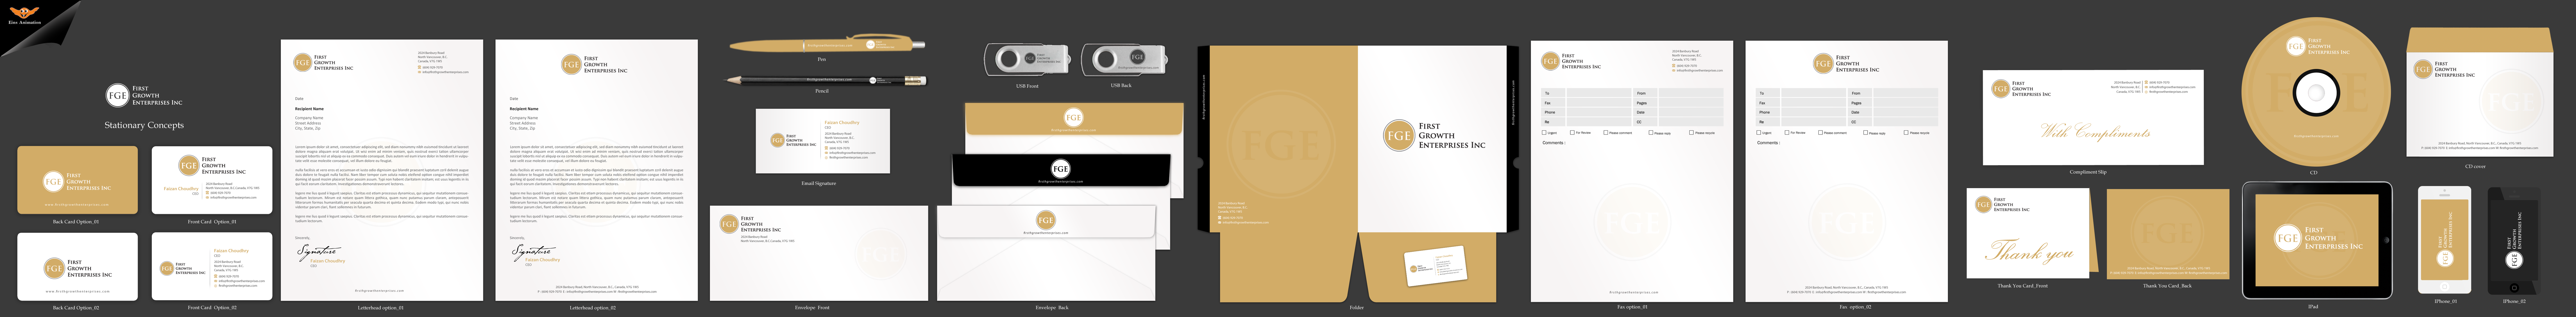 New Letterhead & Business Card for Forestry and General Trading Company - Agriculture